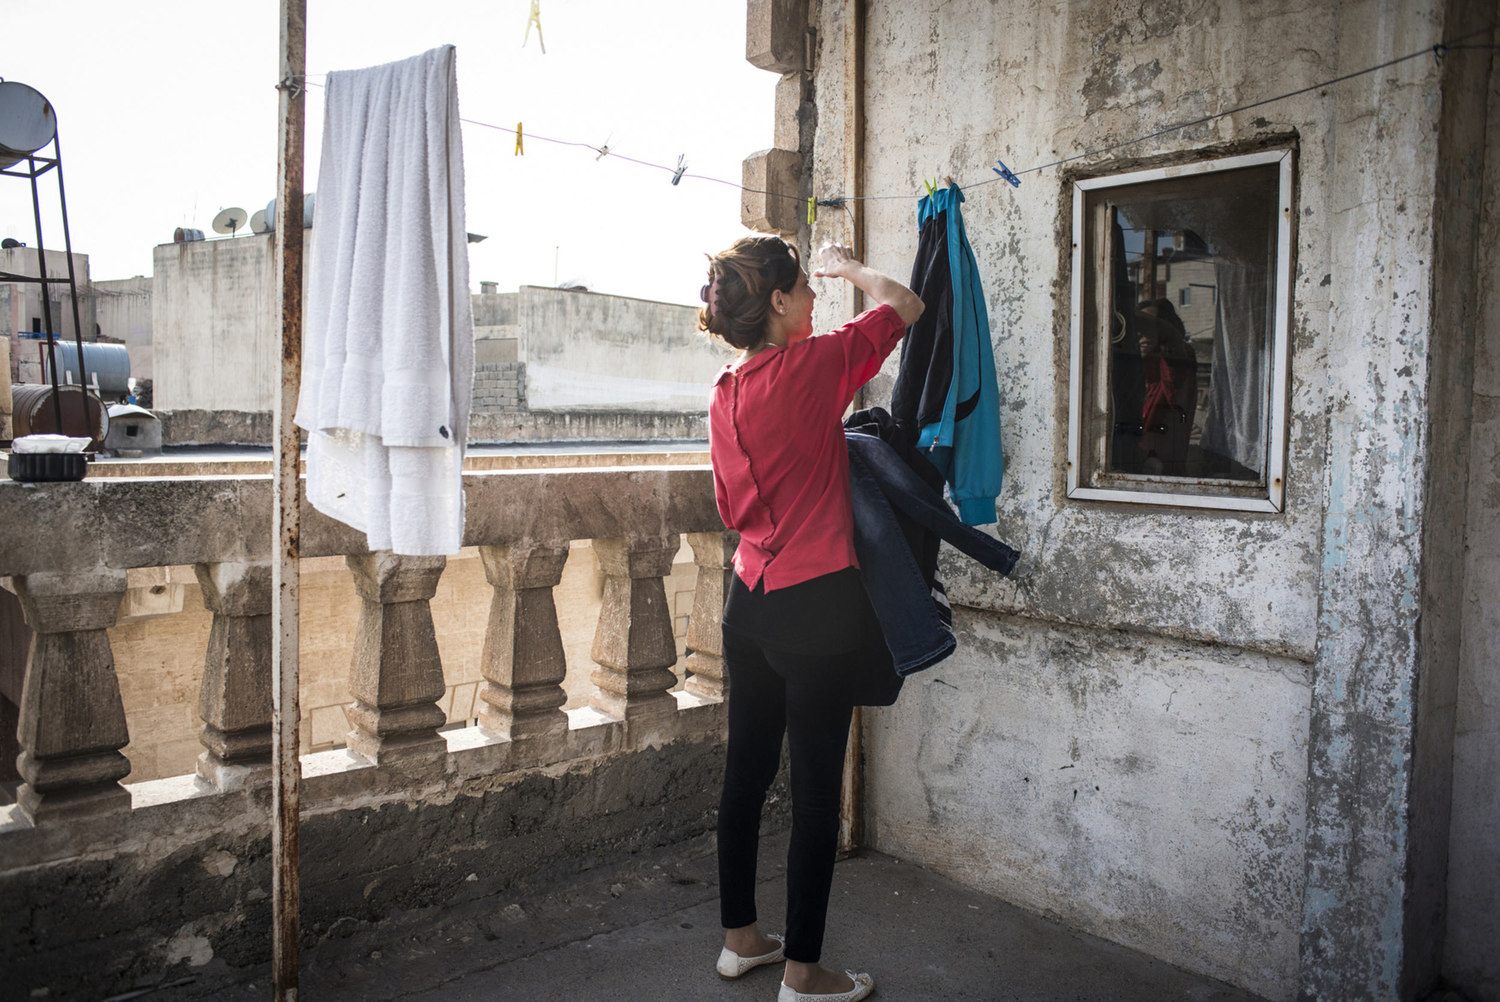 Ninwa Mirza takes in the laundry from outside of her temporary home in the Cultural Center on October 30th, 2014 in Midyat, Turkey.